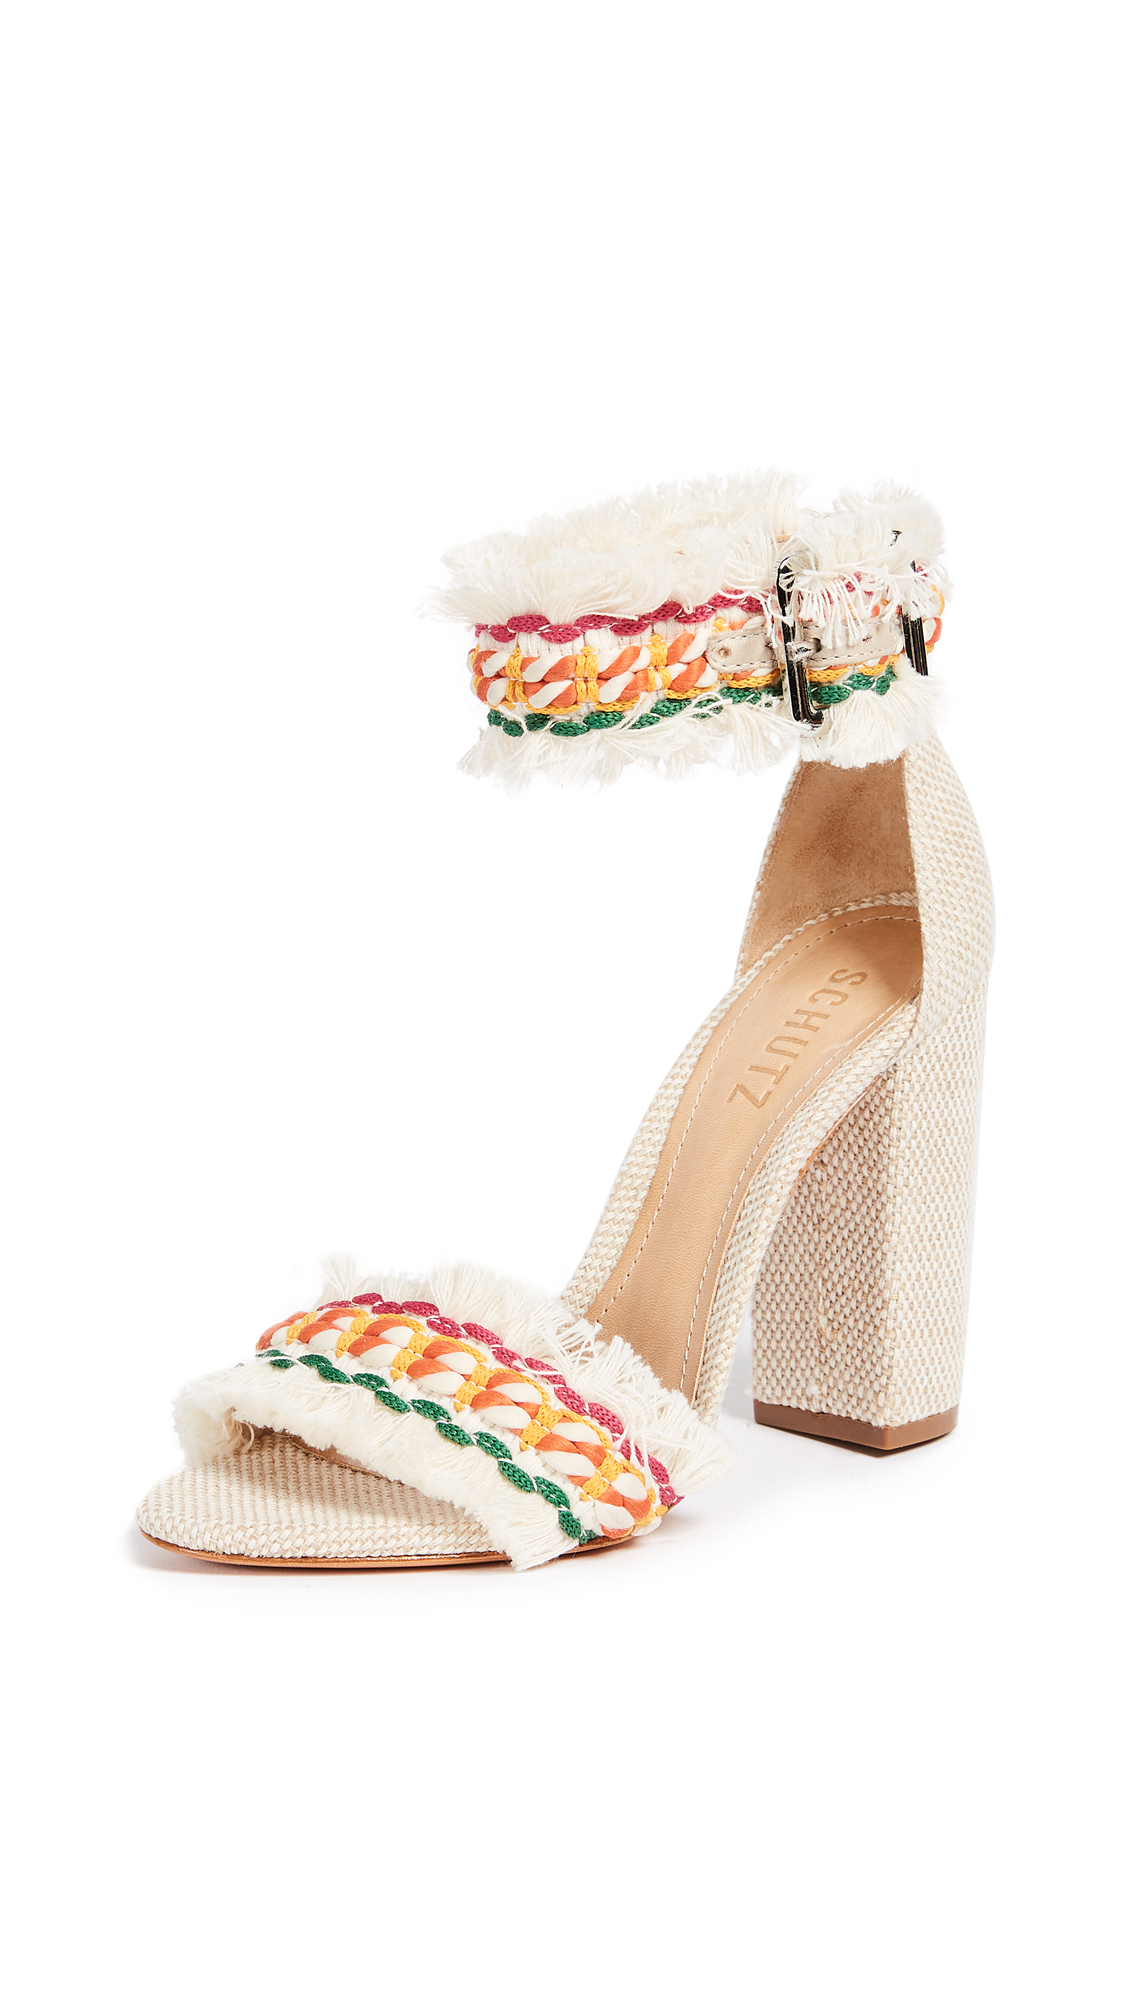 Schutz Zoola Block Heel Sandals - Multi